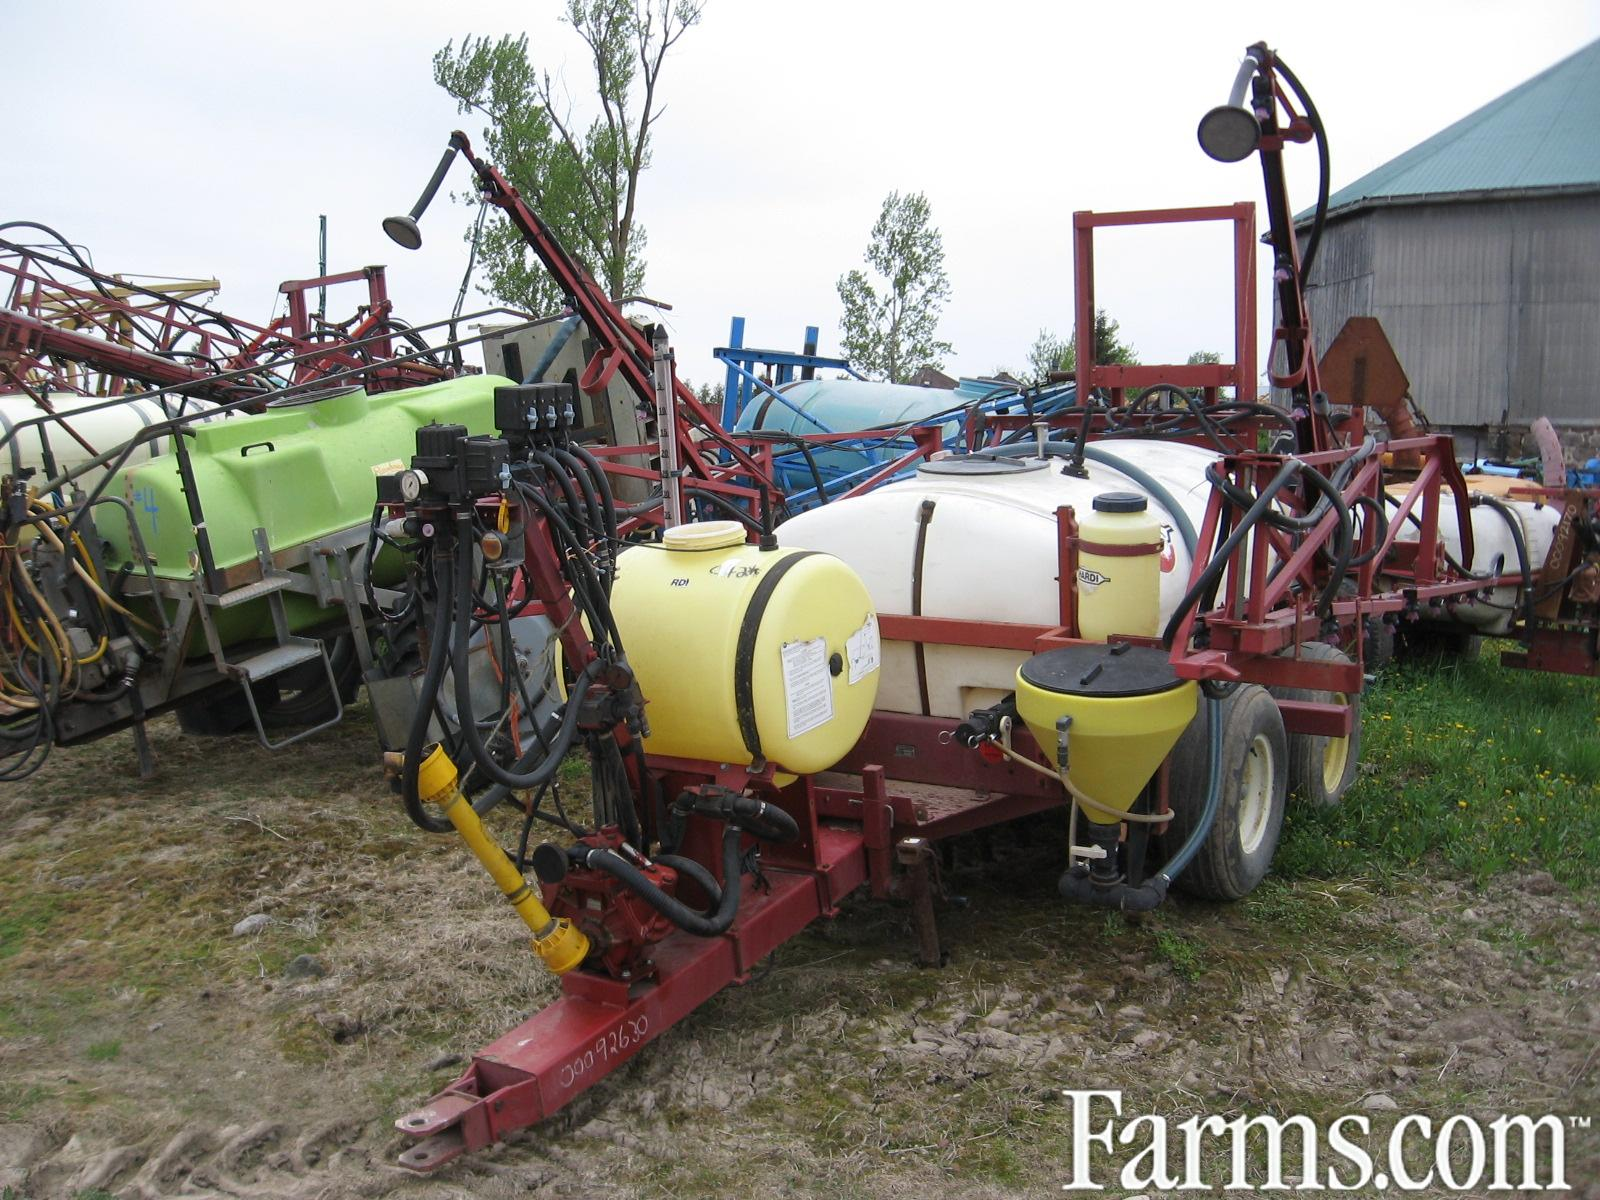 Hardi TR 500, 50' boom, chemical injector $3900